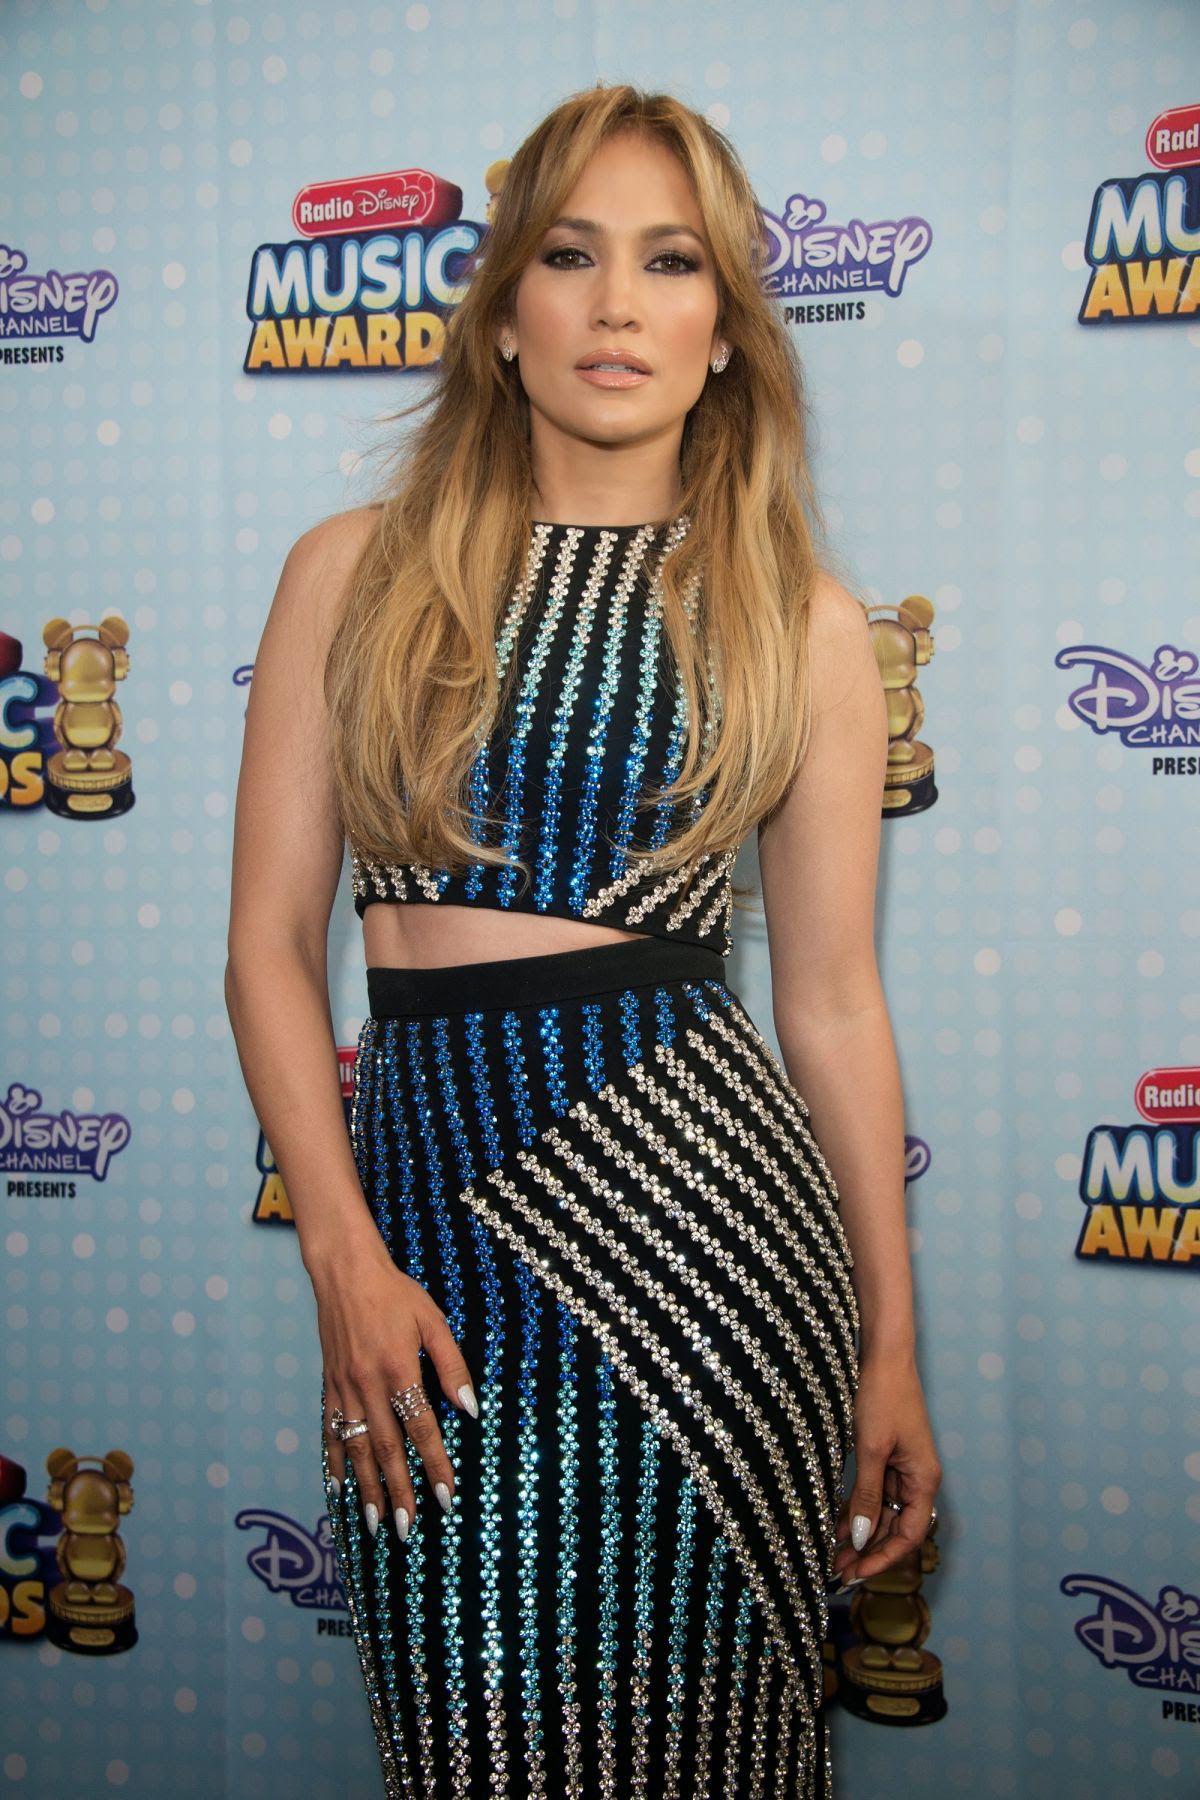 JENNIFER LOPEZ at 2015 Radio Disney Music Awards in Los Angeles